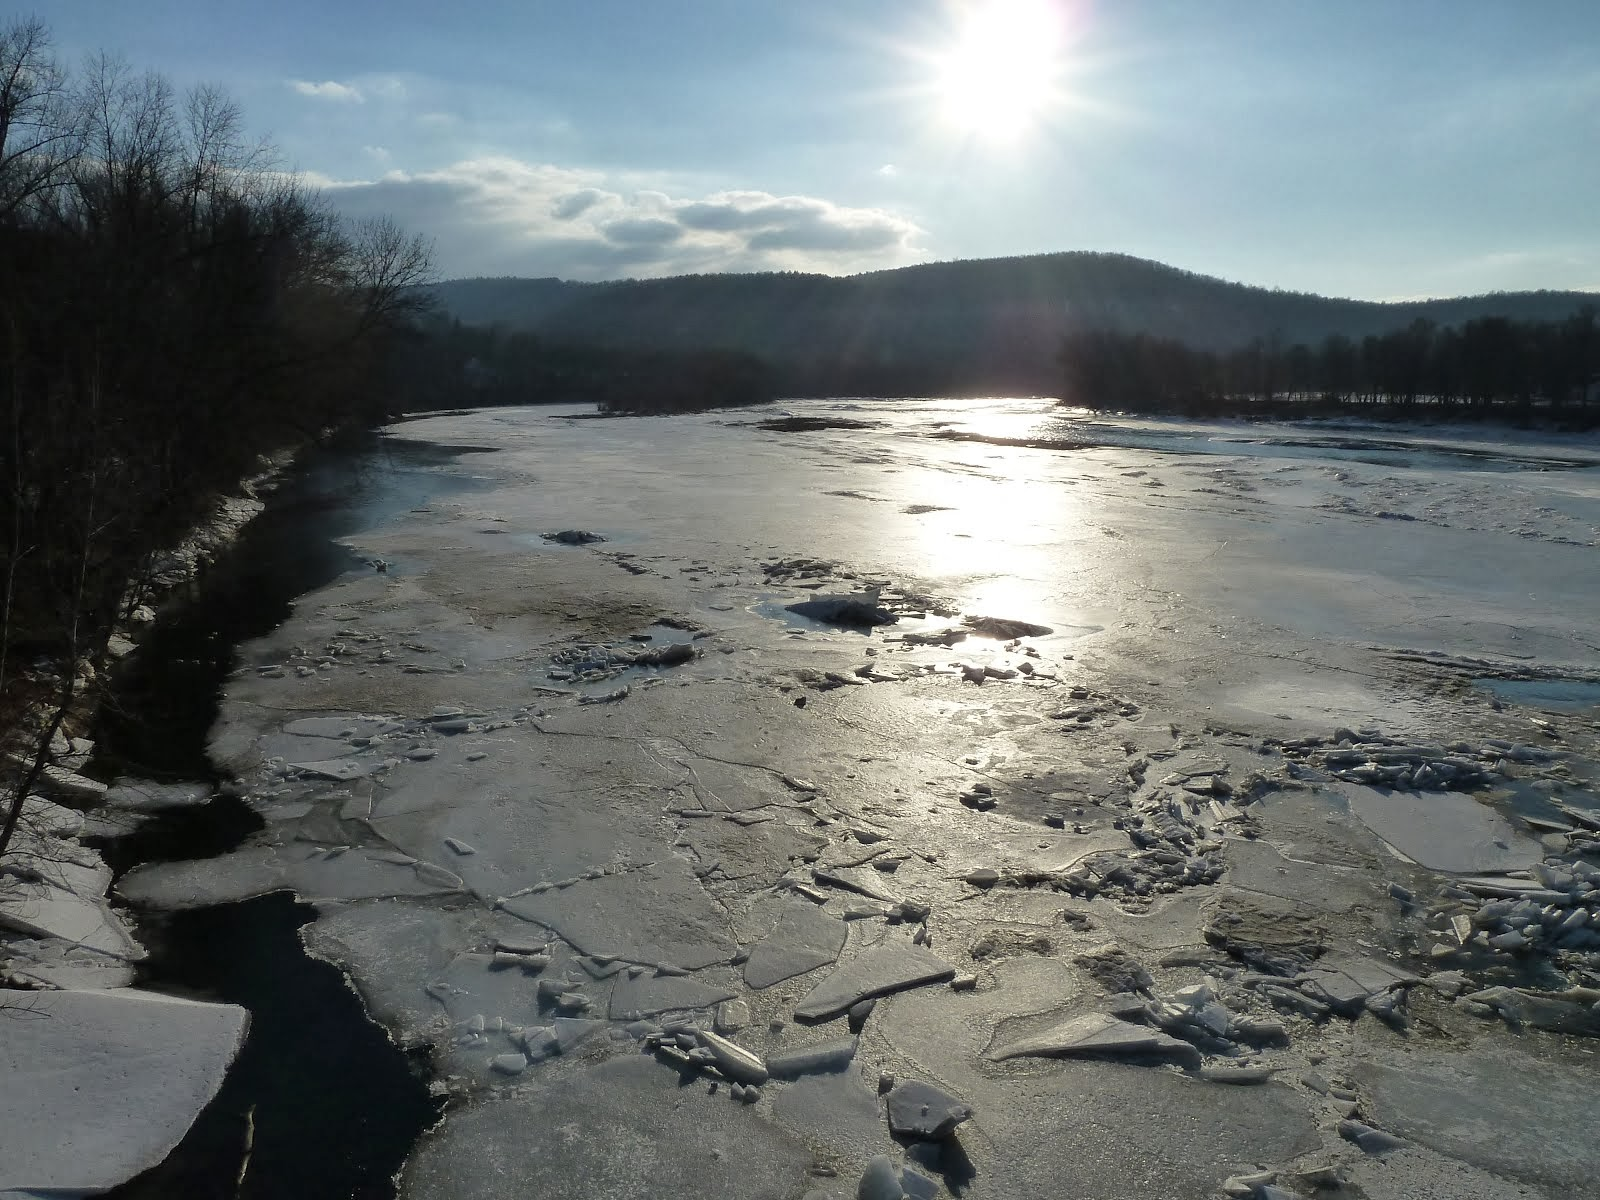 Susquehanna River @ Laceyville, PA on 3/9/14